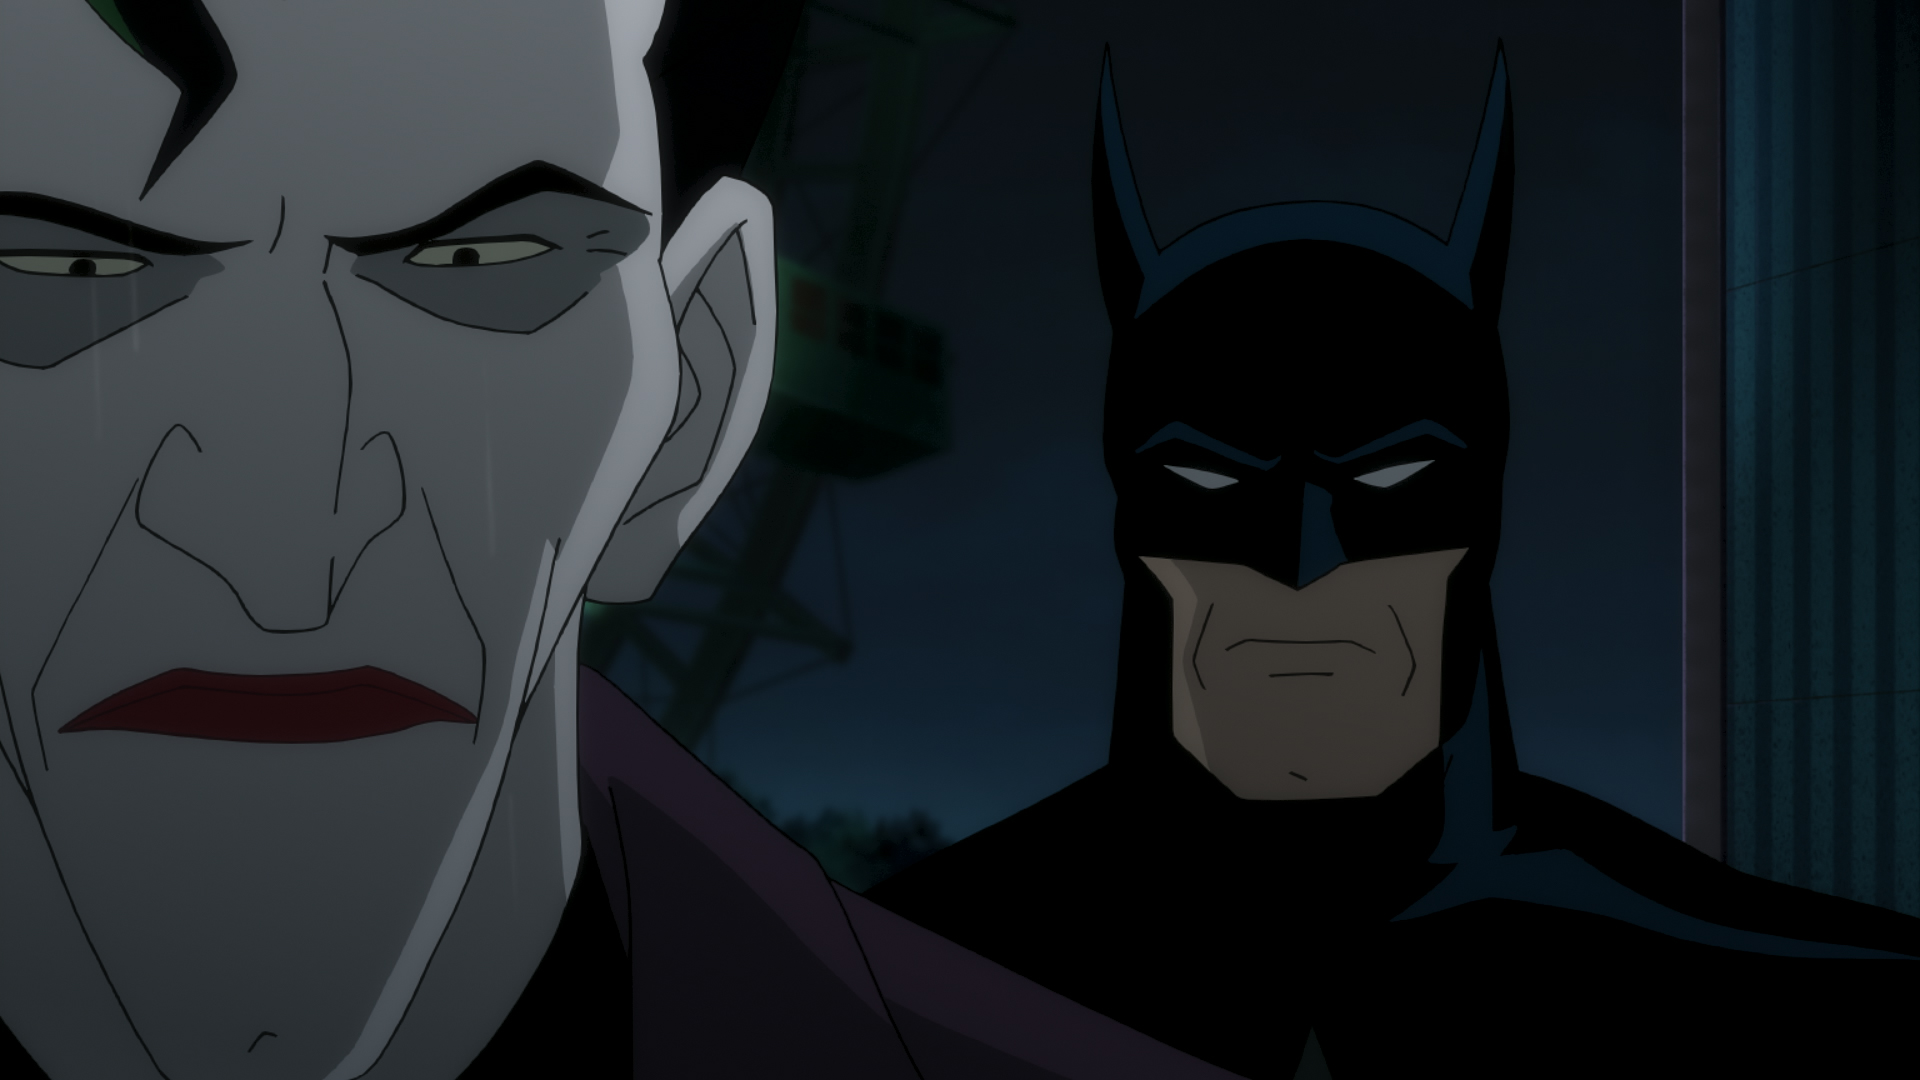 Descargar Batman: The Killing Joke (La Broma Asesina) Latino por MEGA.